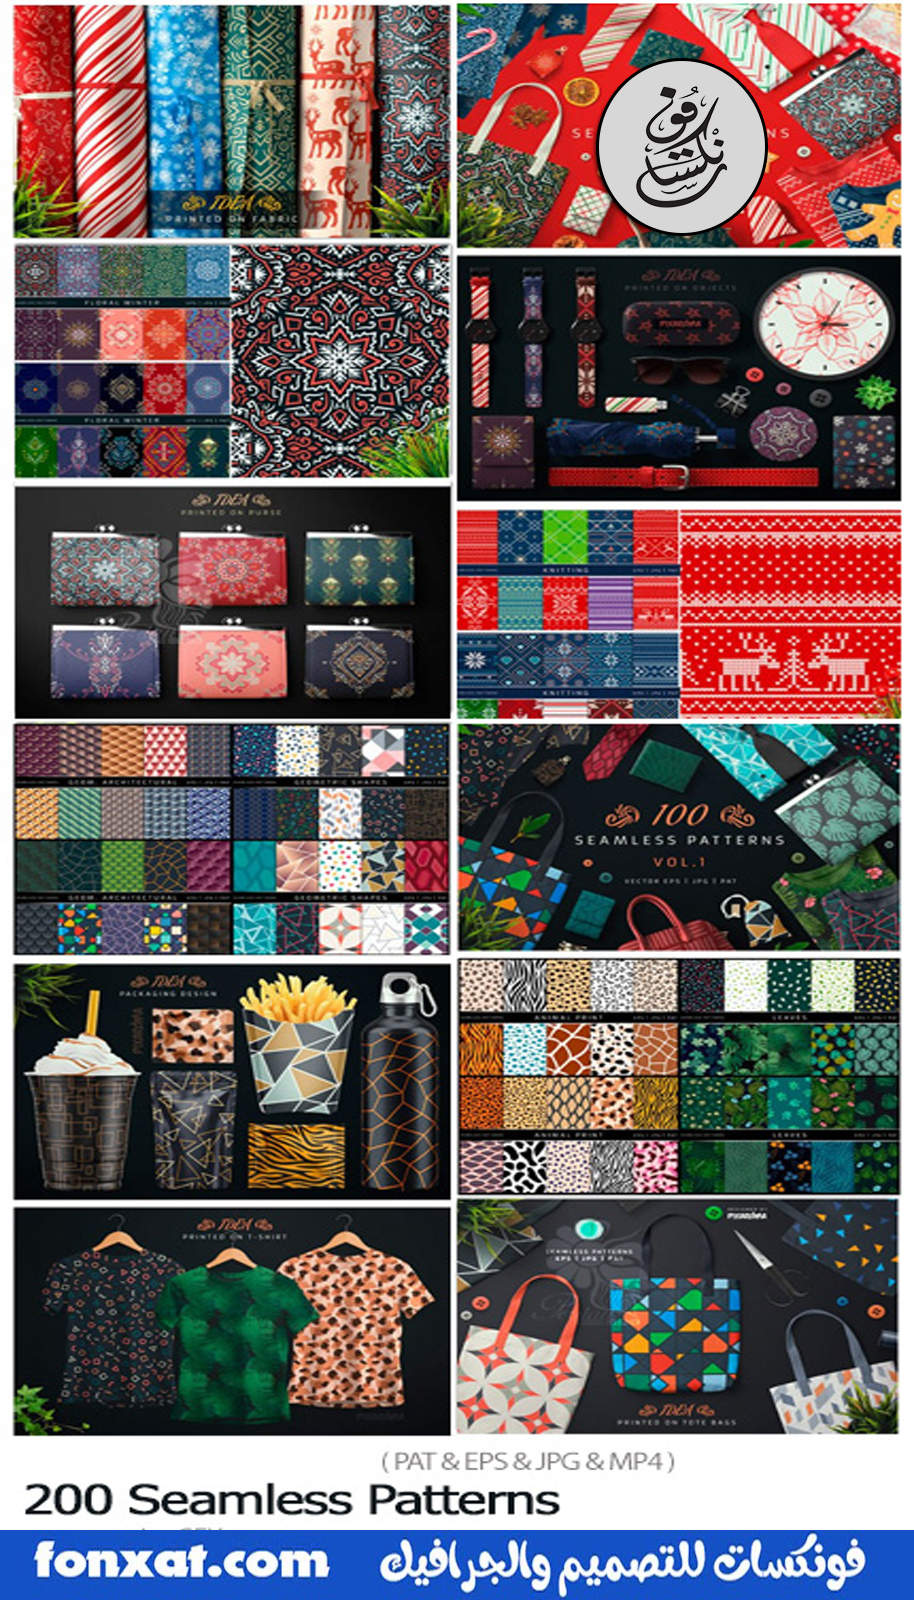 Download a set of 200 designs pattern print design on the materials group No. 1